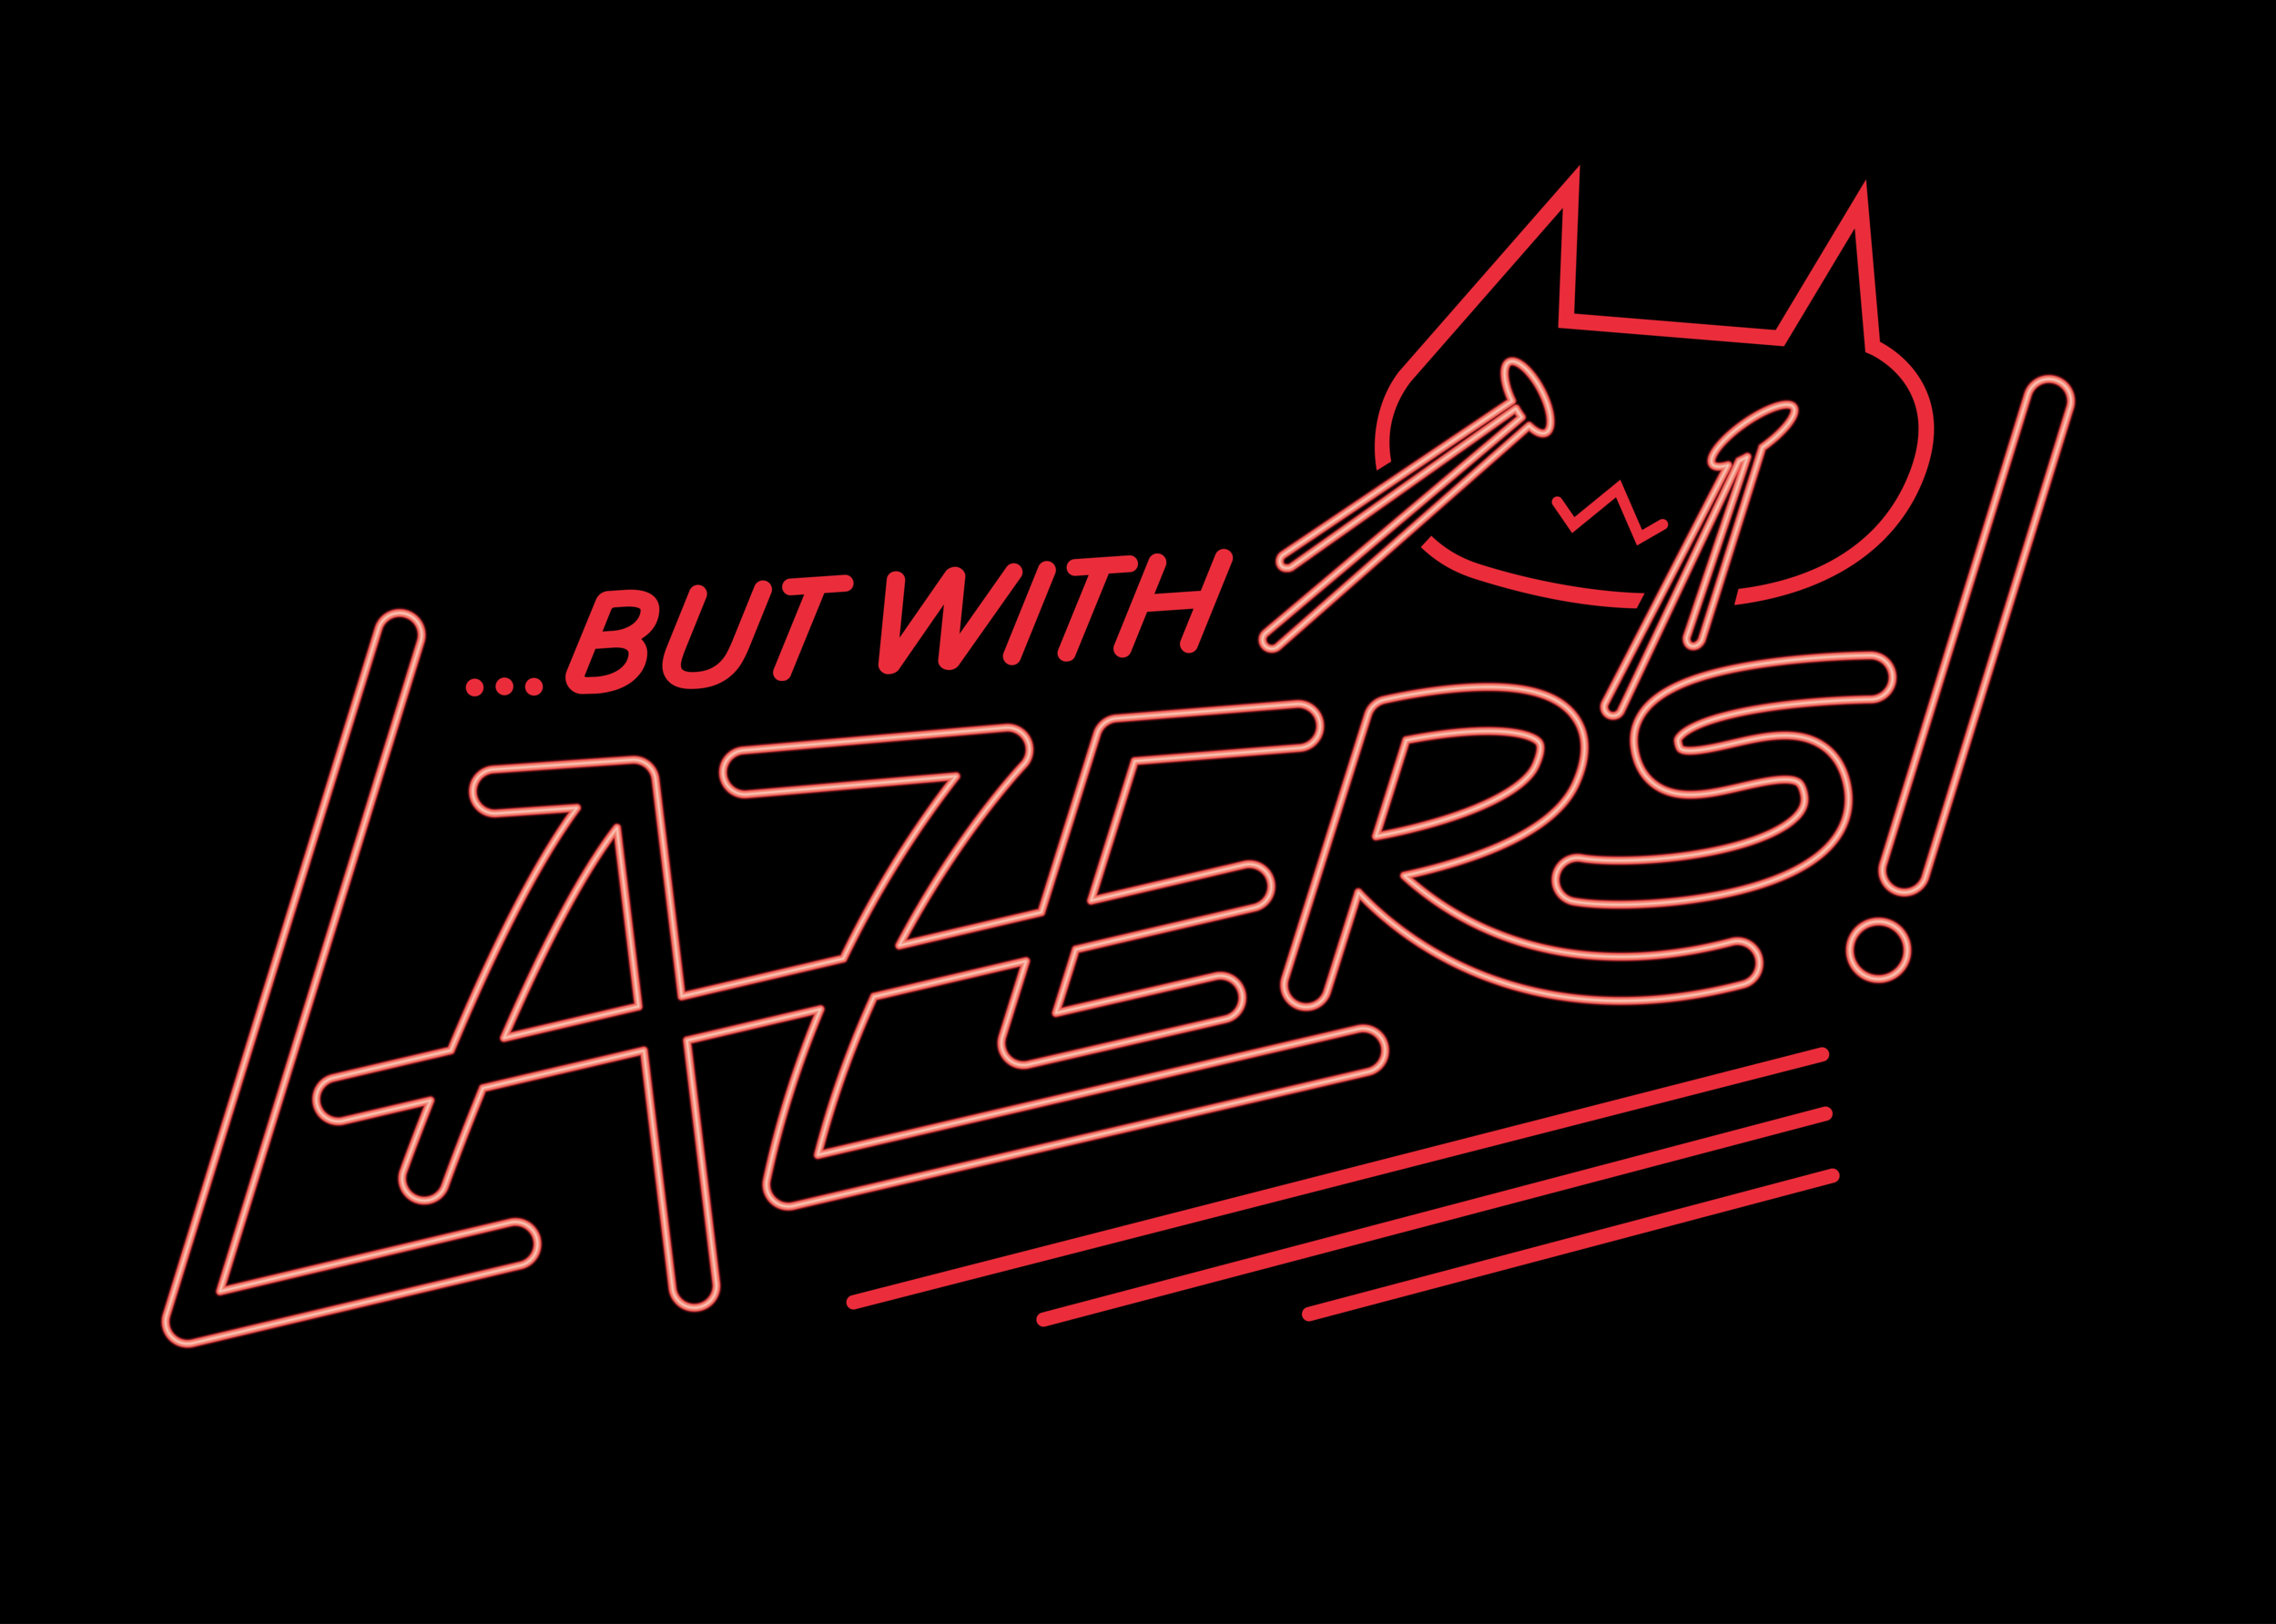 lazers-05.png